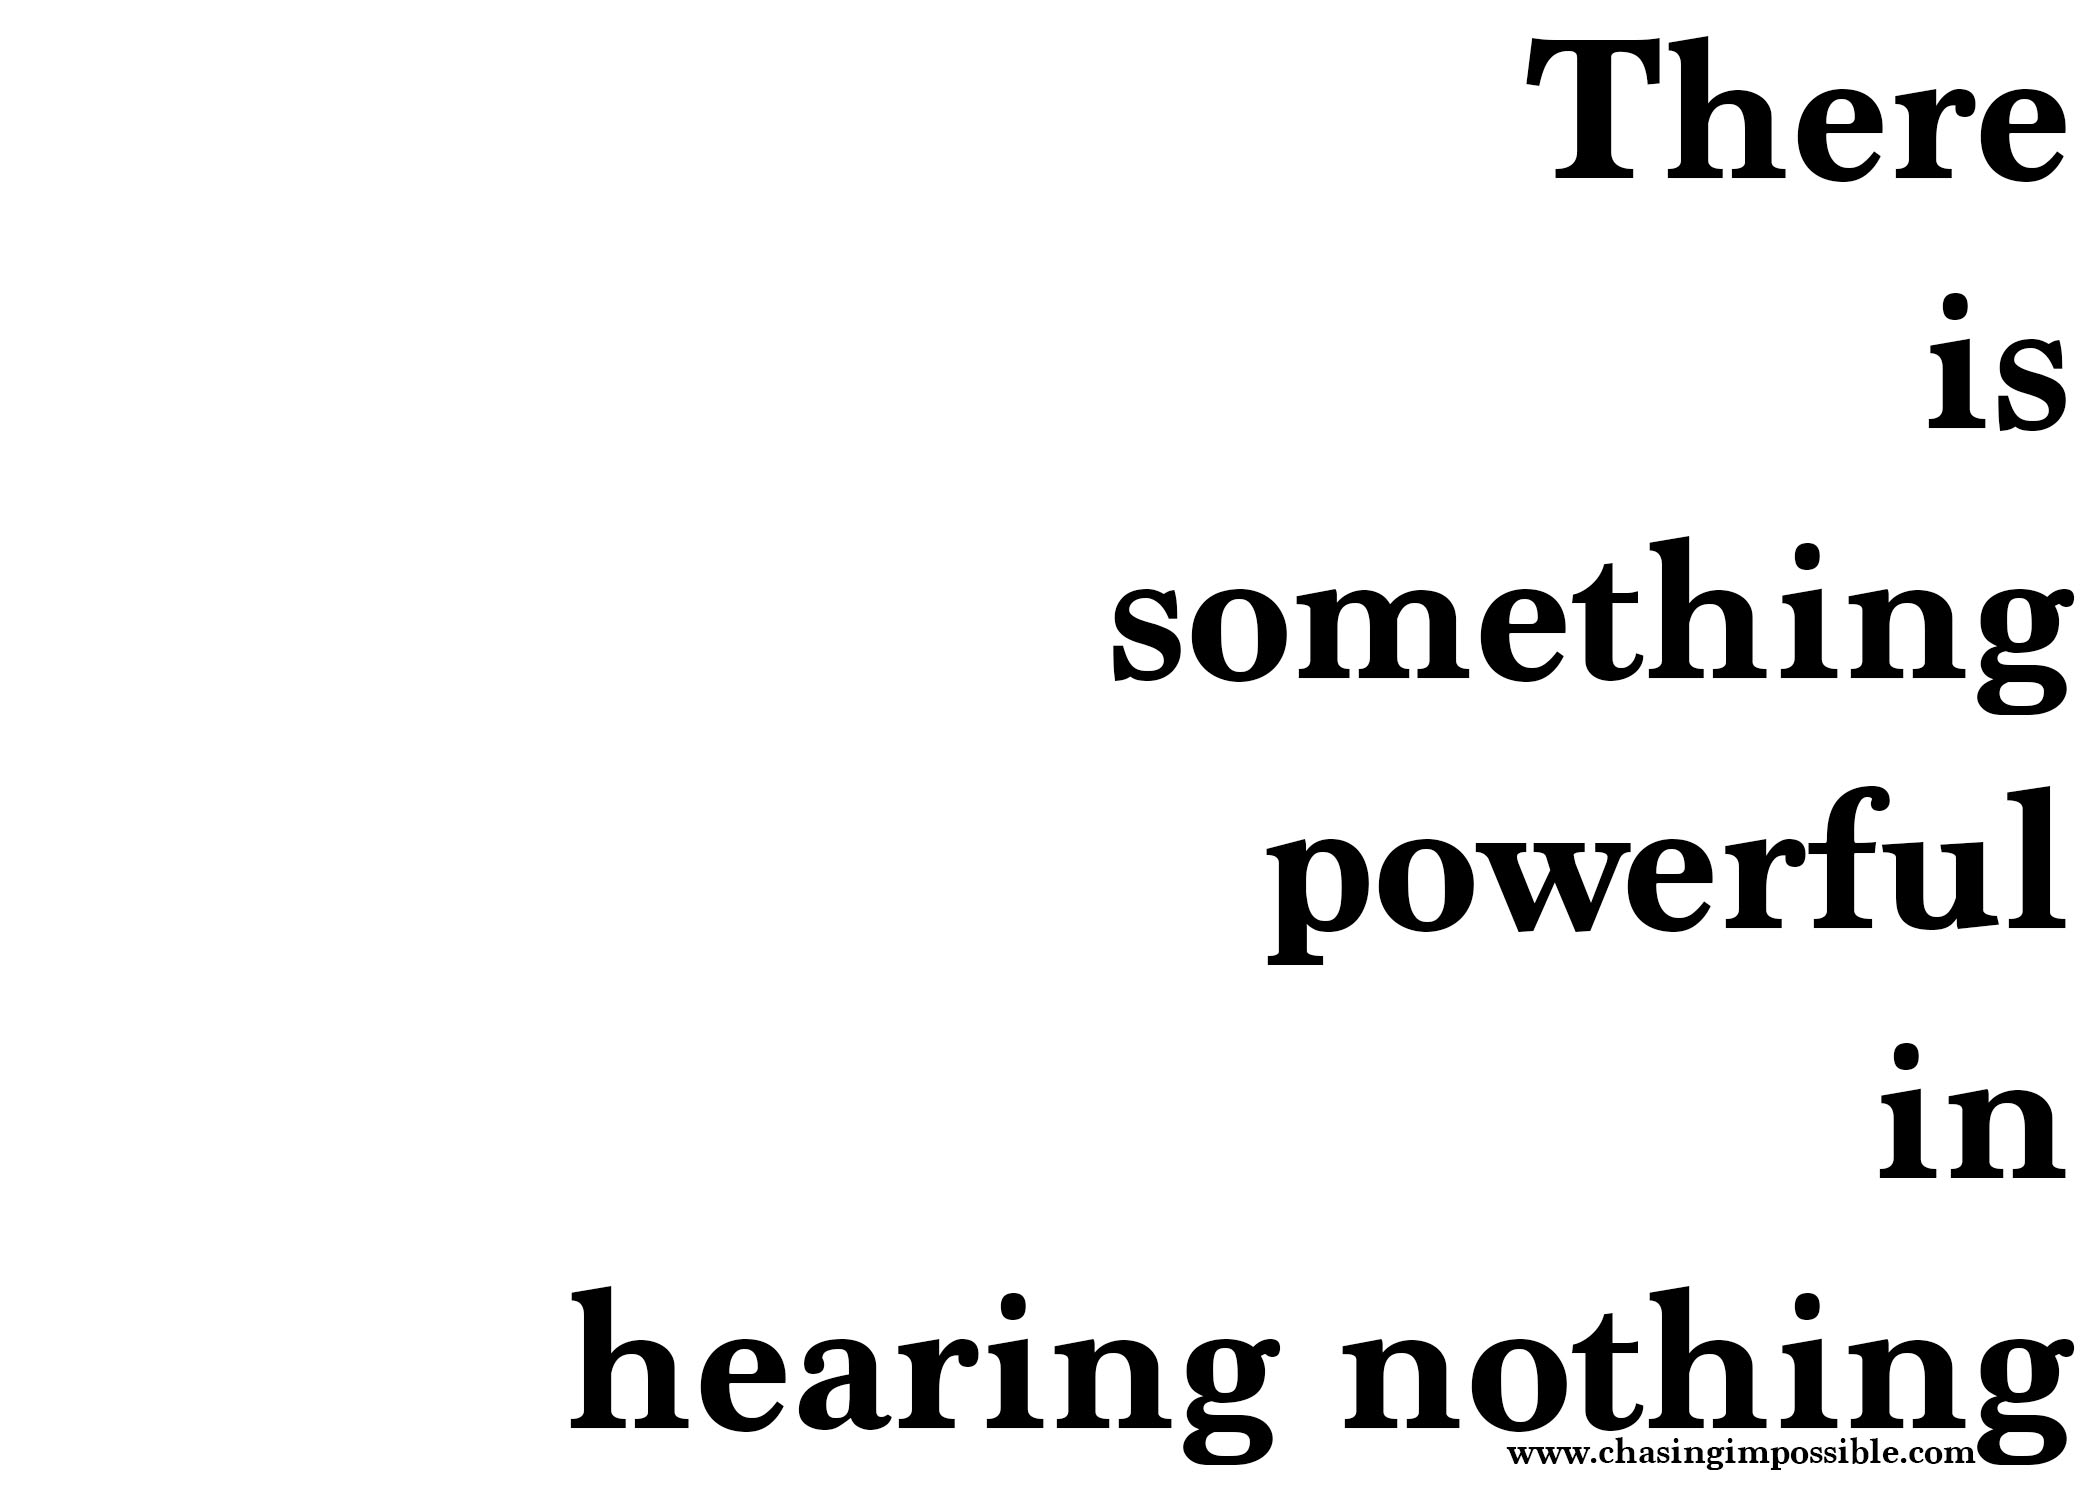 There is something powerful in hearing nothing